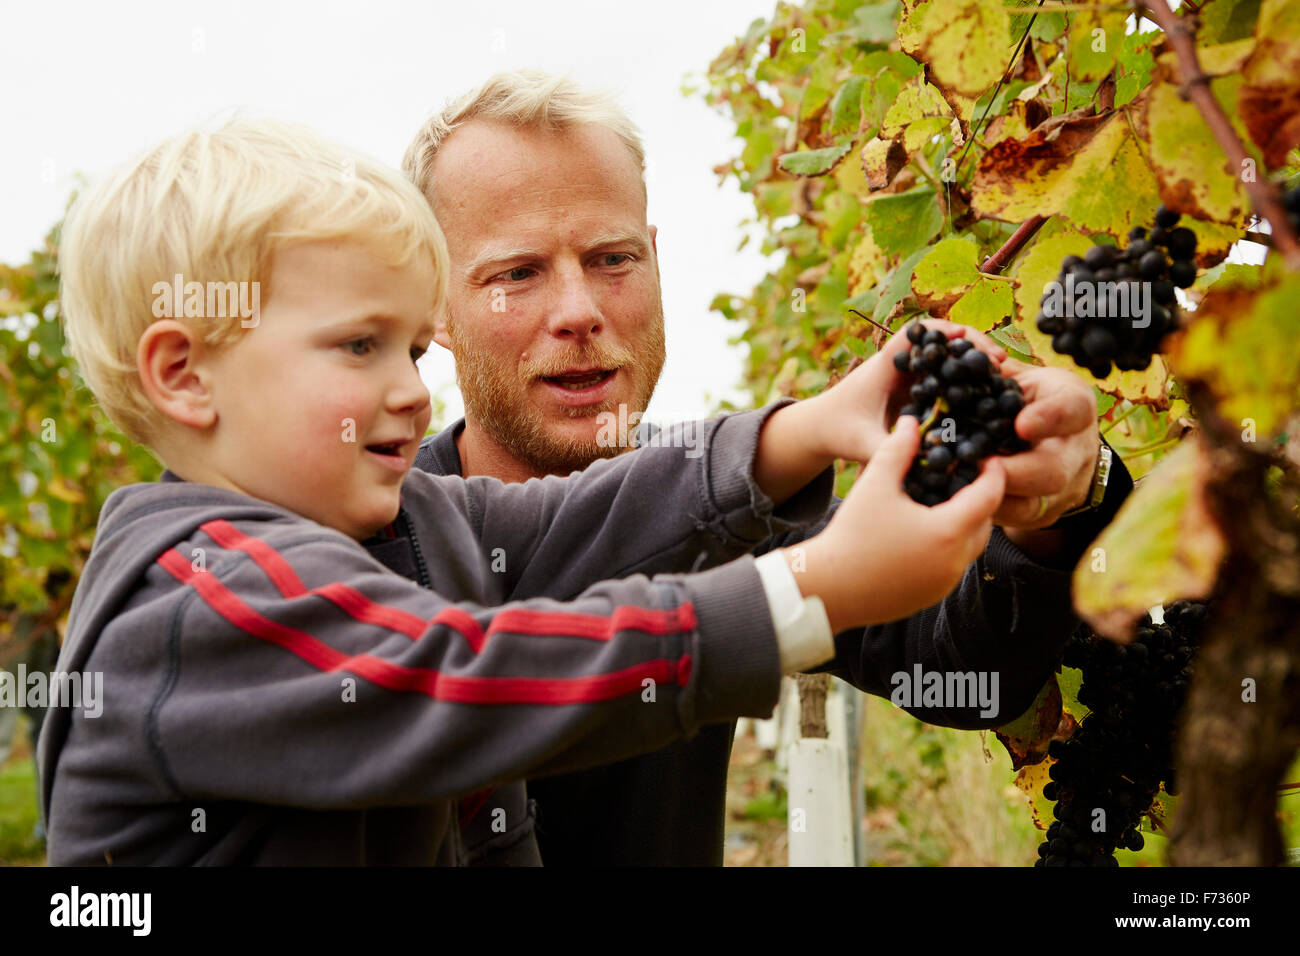 A man and his son selecting bunches of red ripe grapes on the vine. - Stock Image